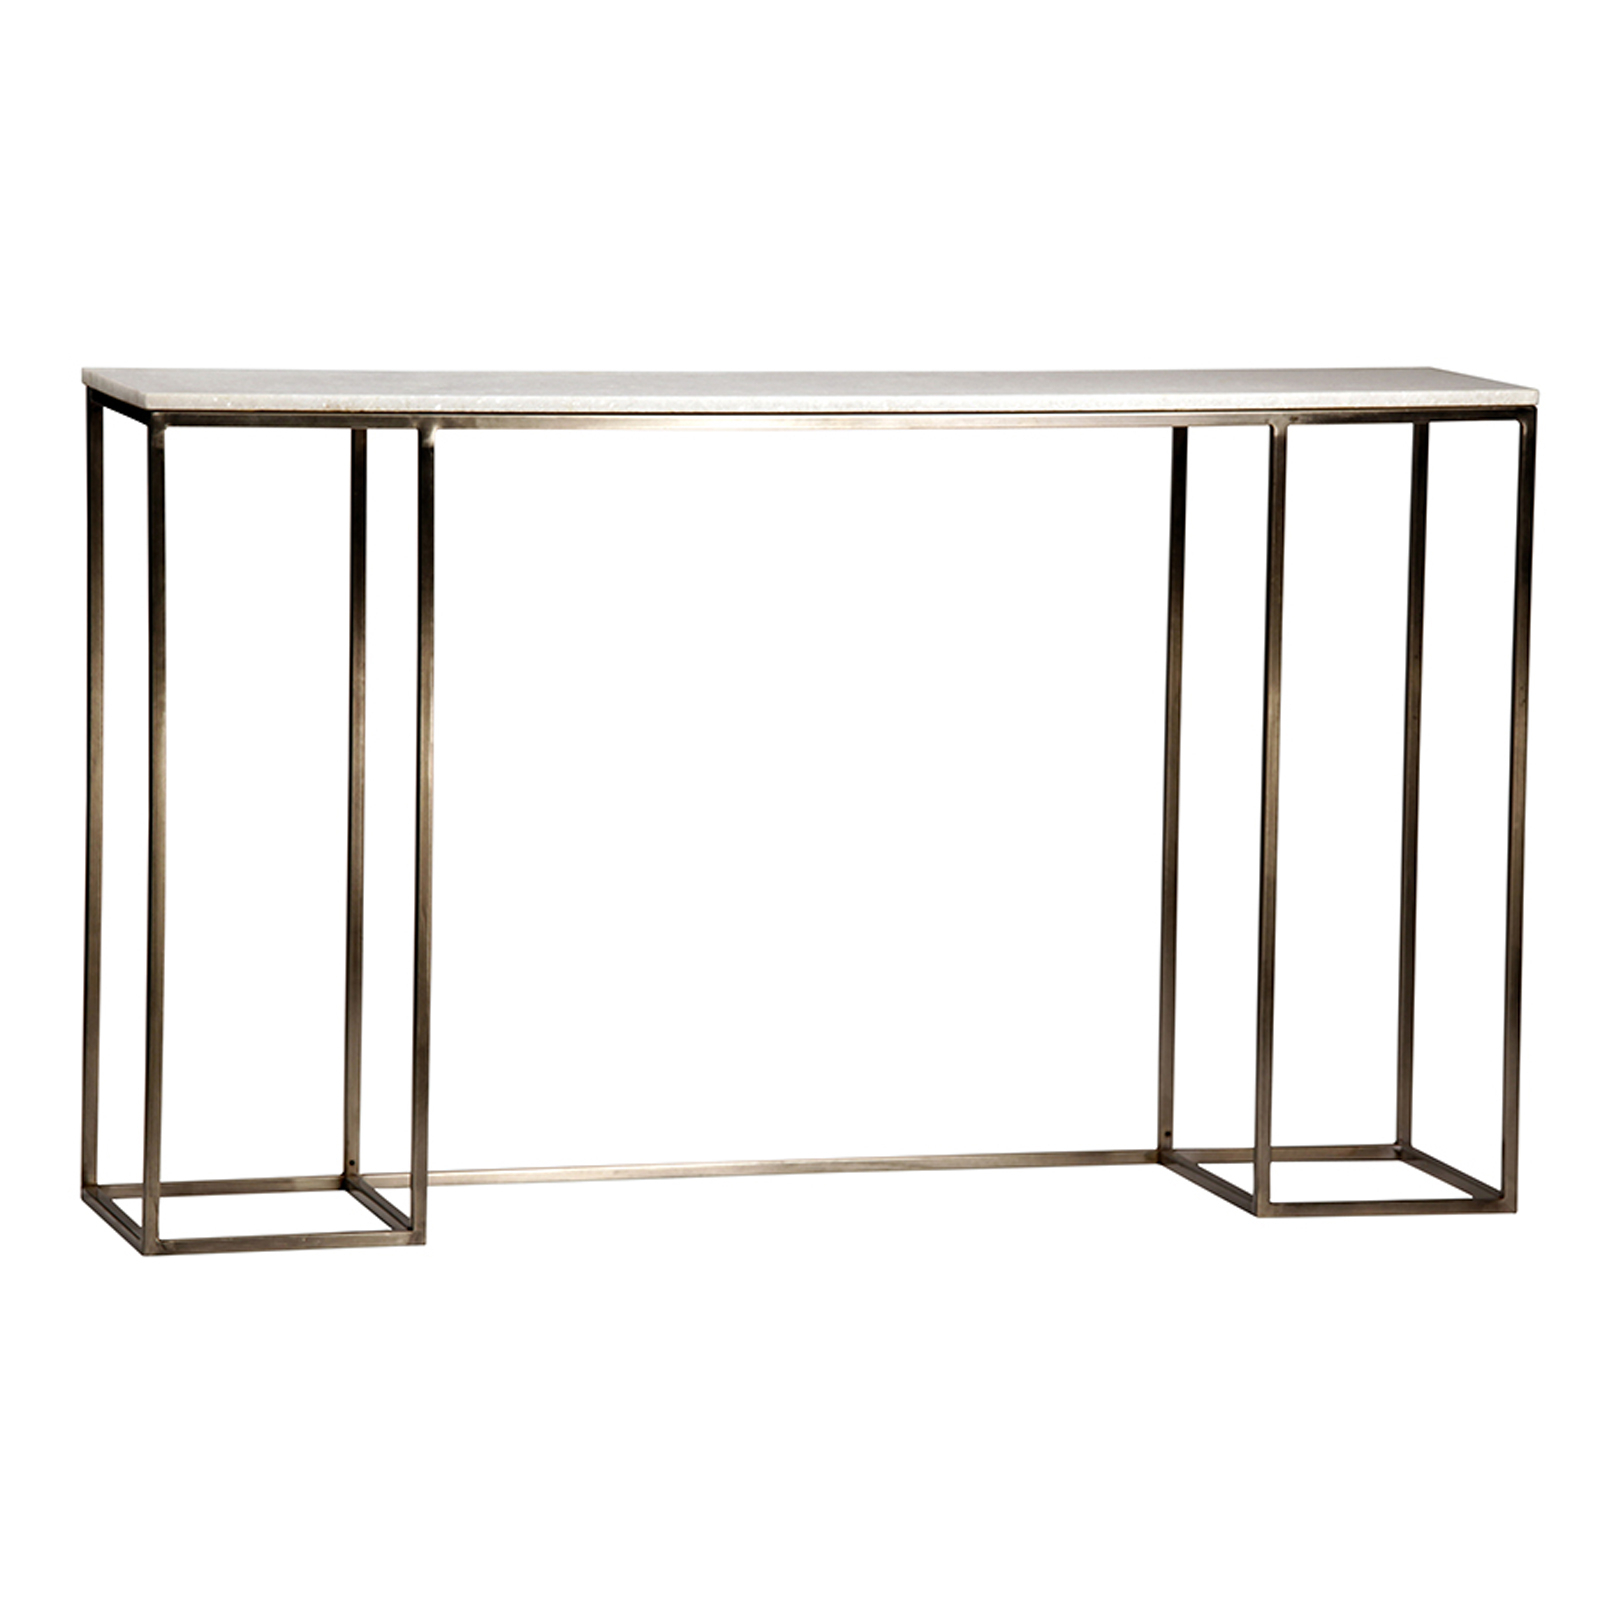 Claire Marble Console Table Furniture | Mix Furniture pertaining to Mix Patina Metal Frame Console Tables (Image 4 of 30)